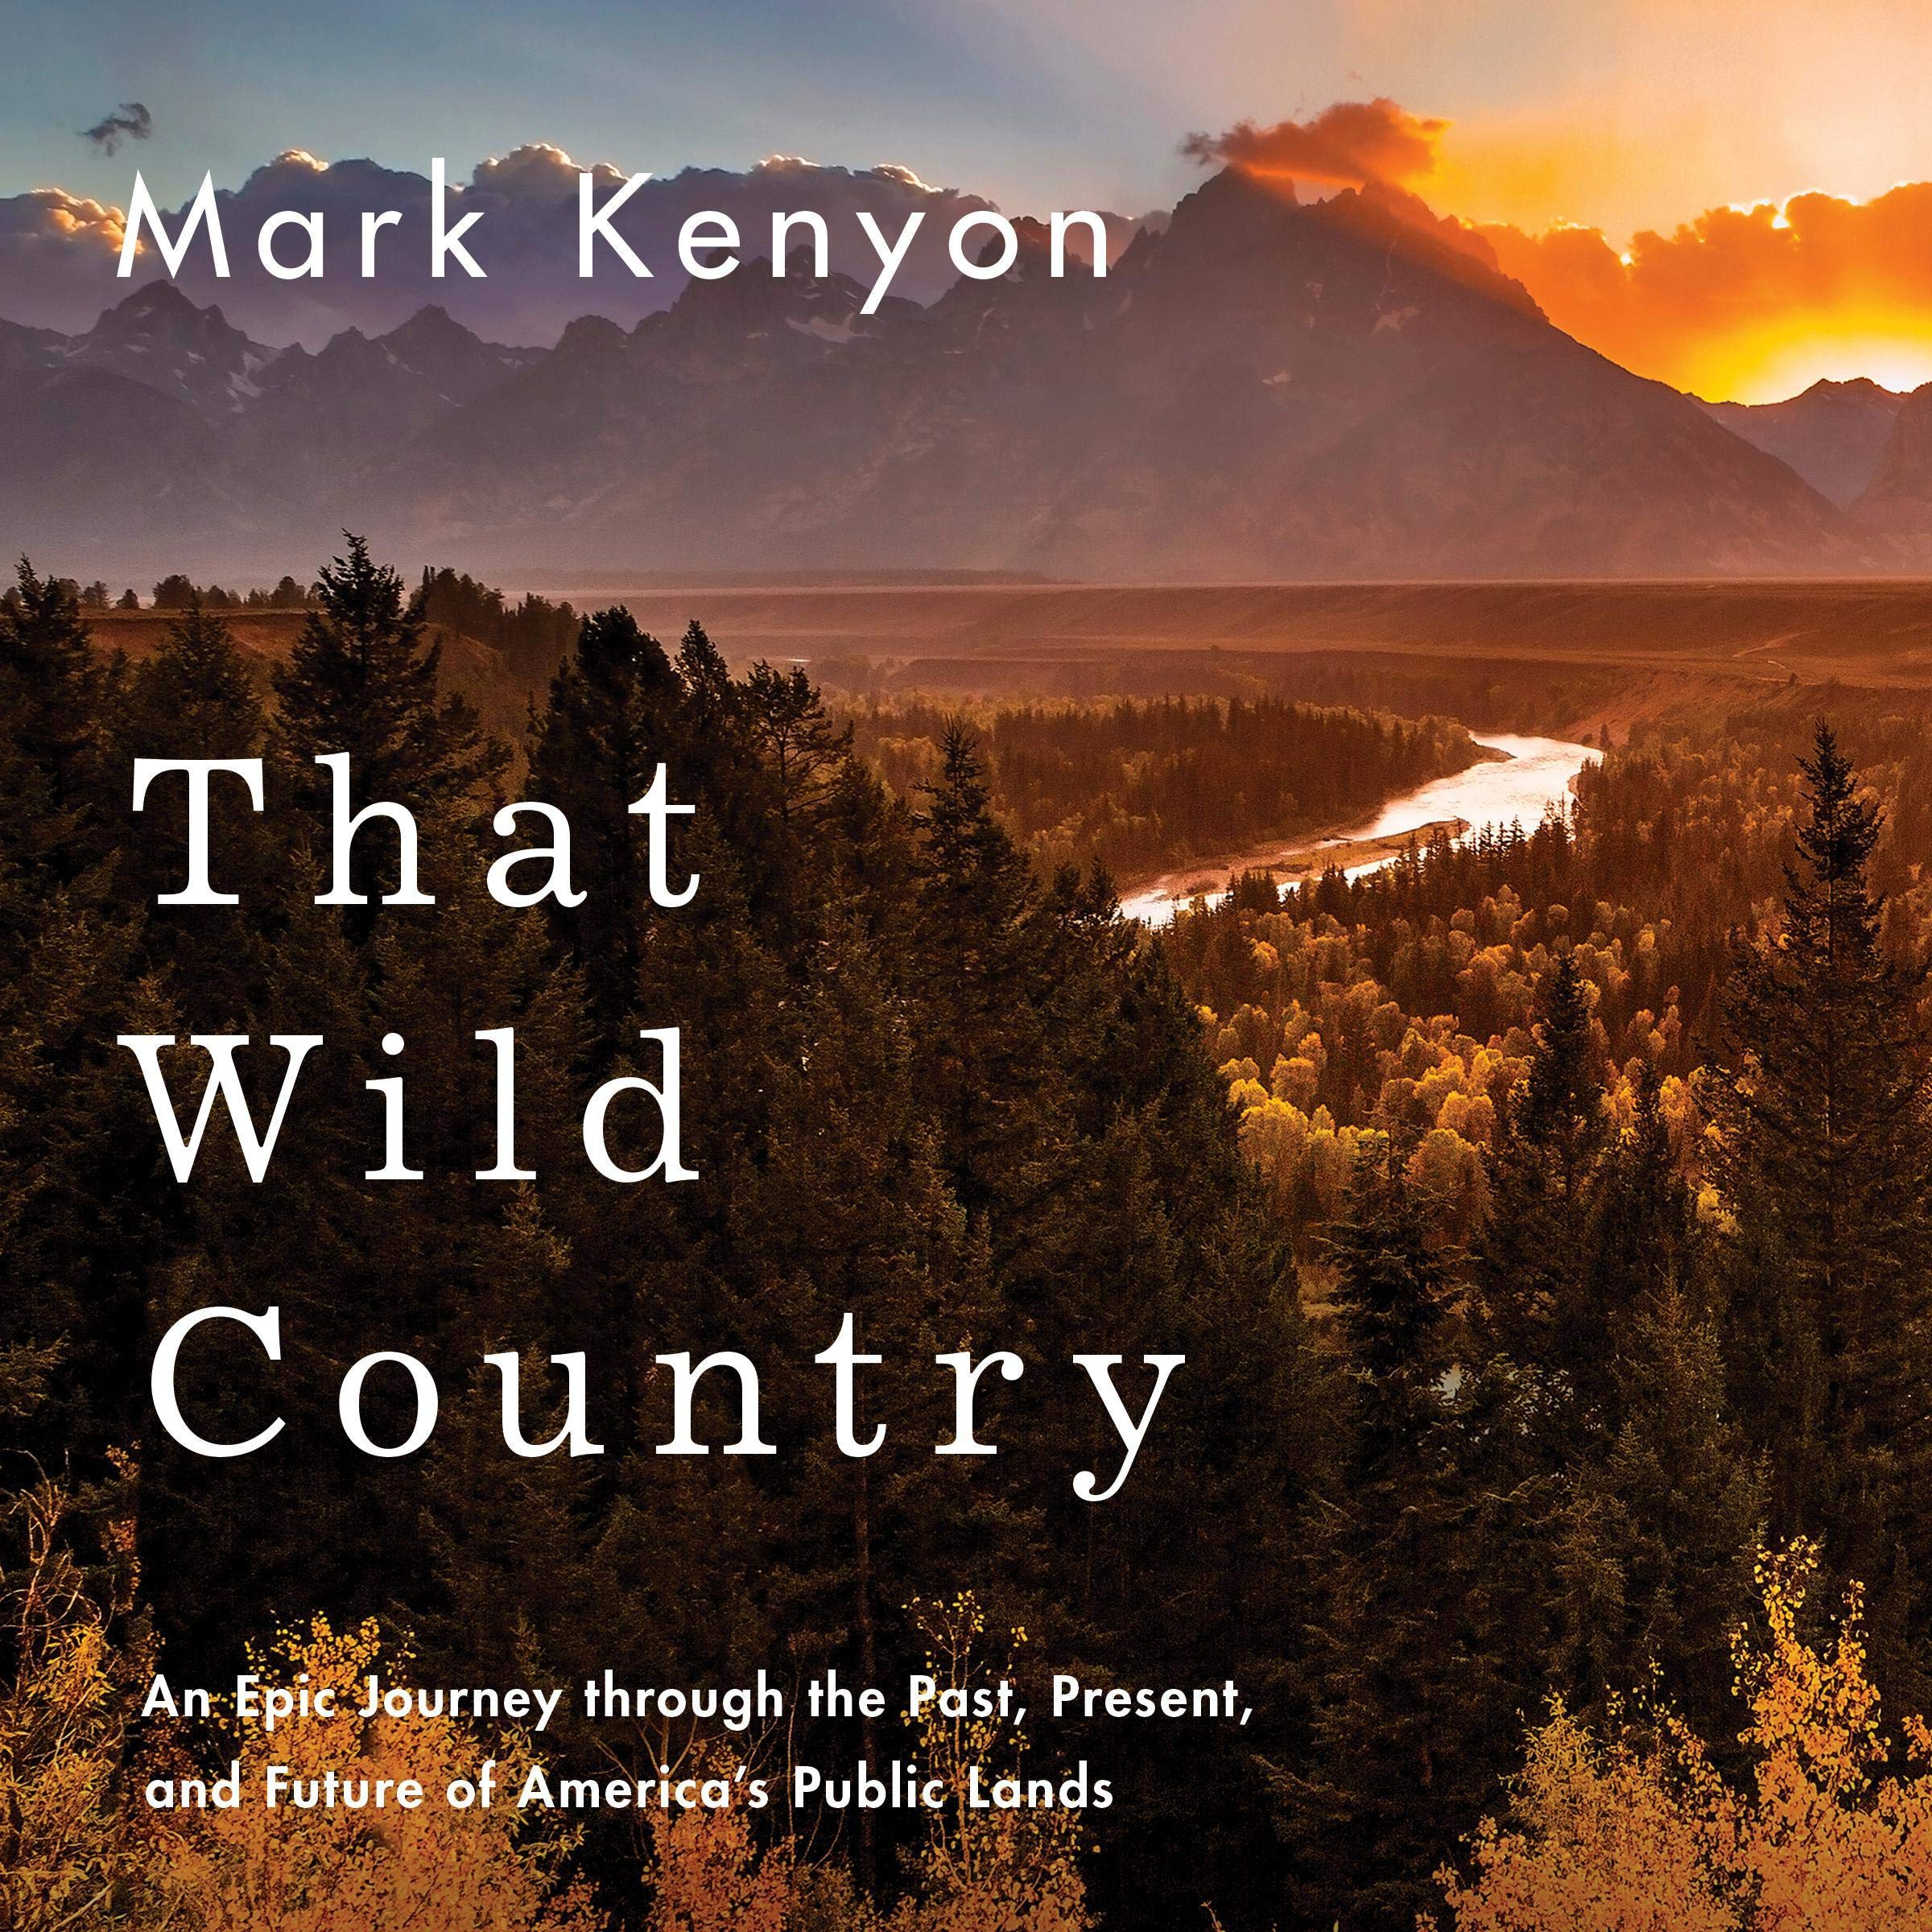 Image OfThat Wild Country: An Epic Journey Through The Past, Present, And Future Of America's Public Lands